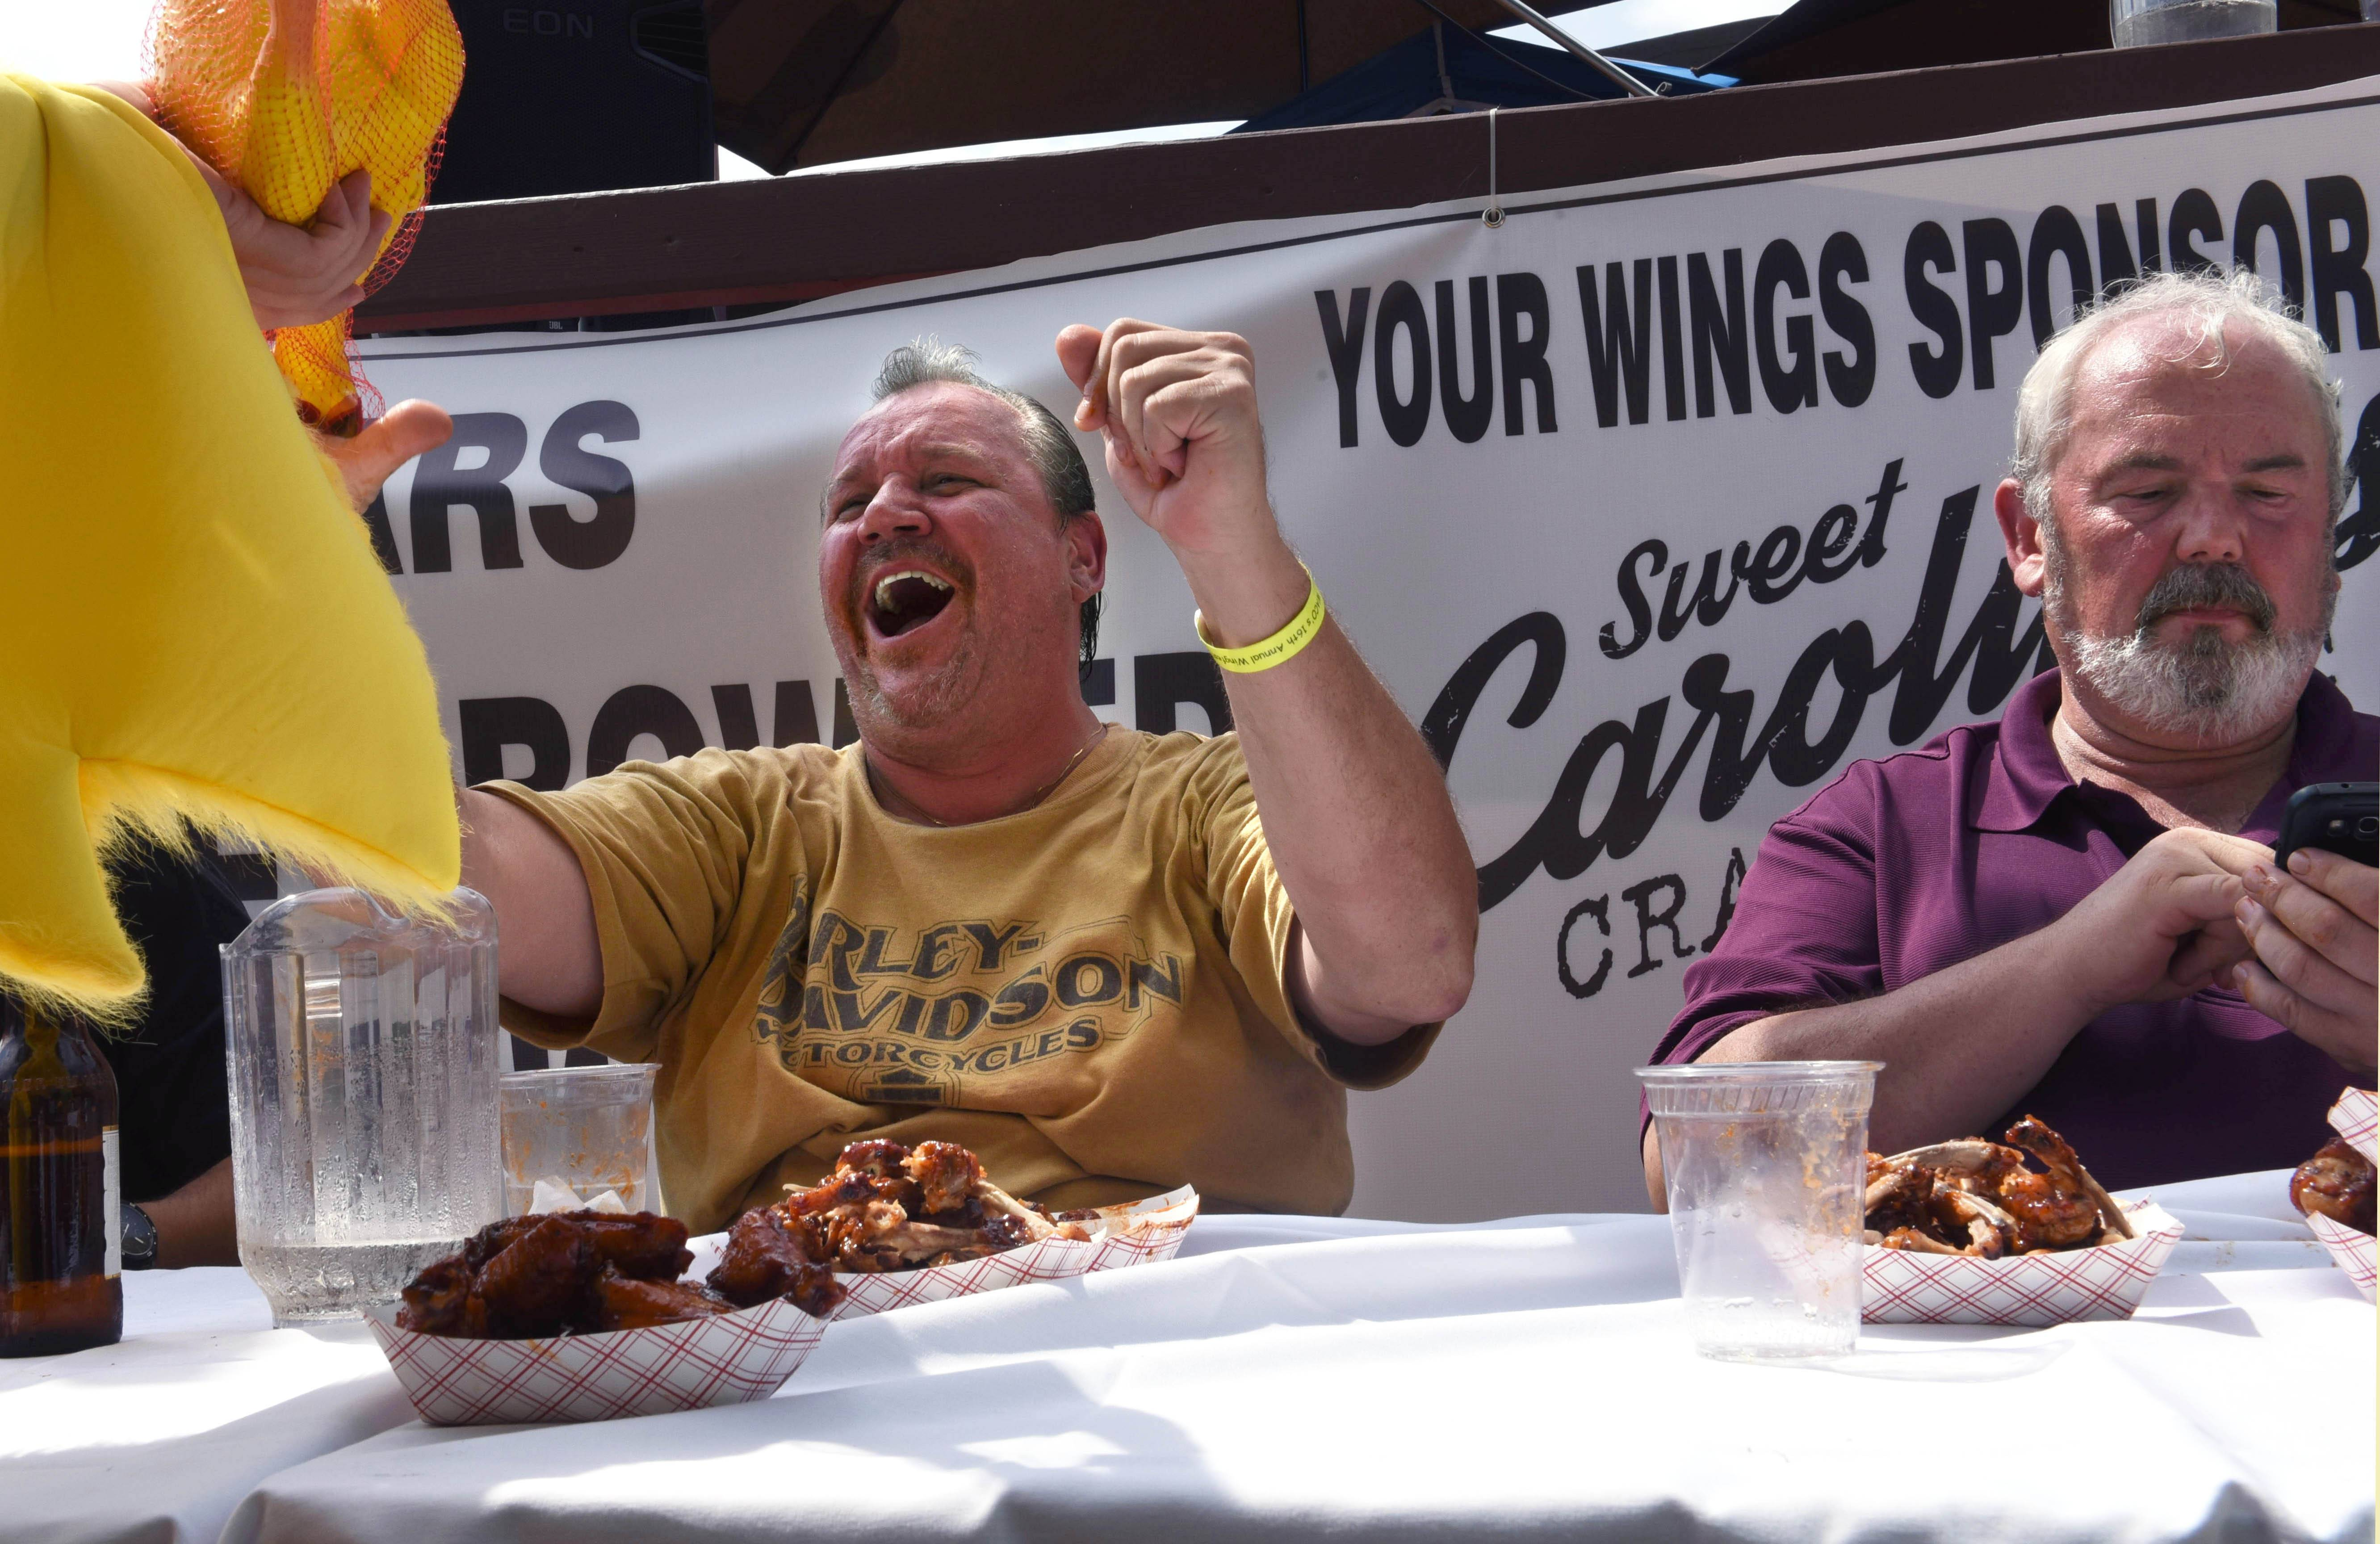 Joe Daniszewski of Mount Prospect celebrates after winning a wing-eating contest Sunday during the Woodfield Area Children's Organization's 16th annual Wingfest & Bags Tournament in Schaumburg.